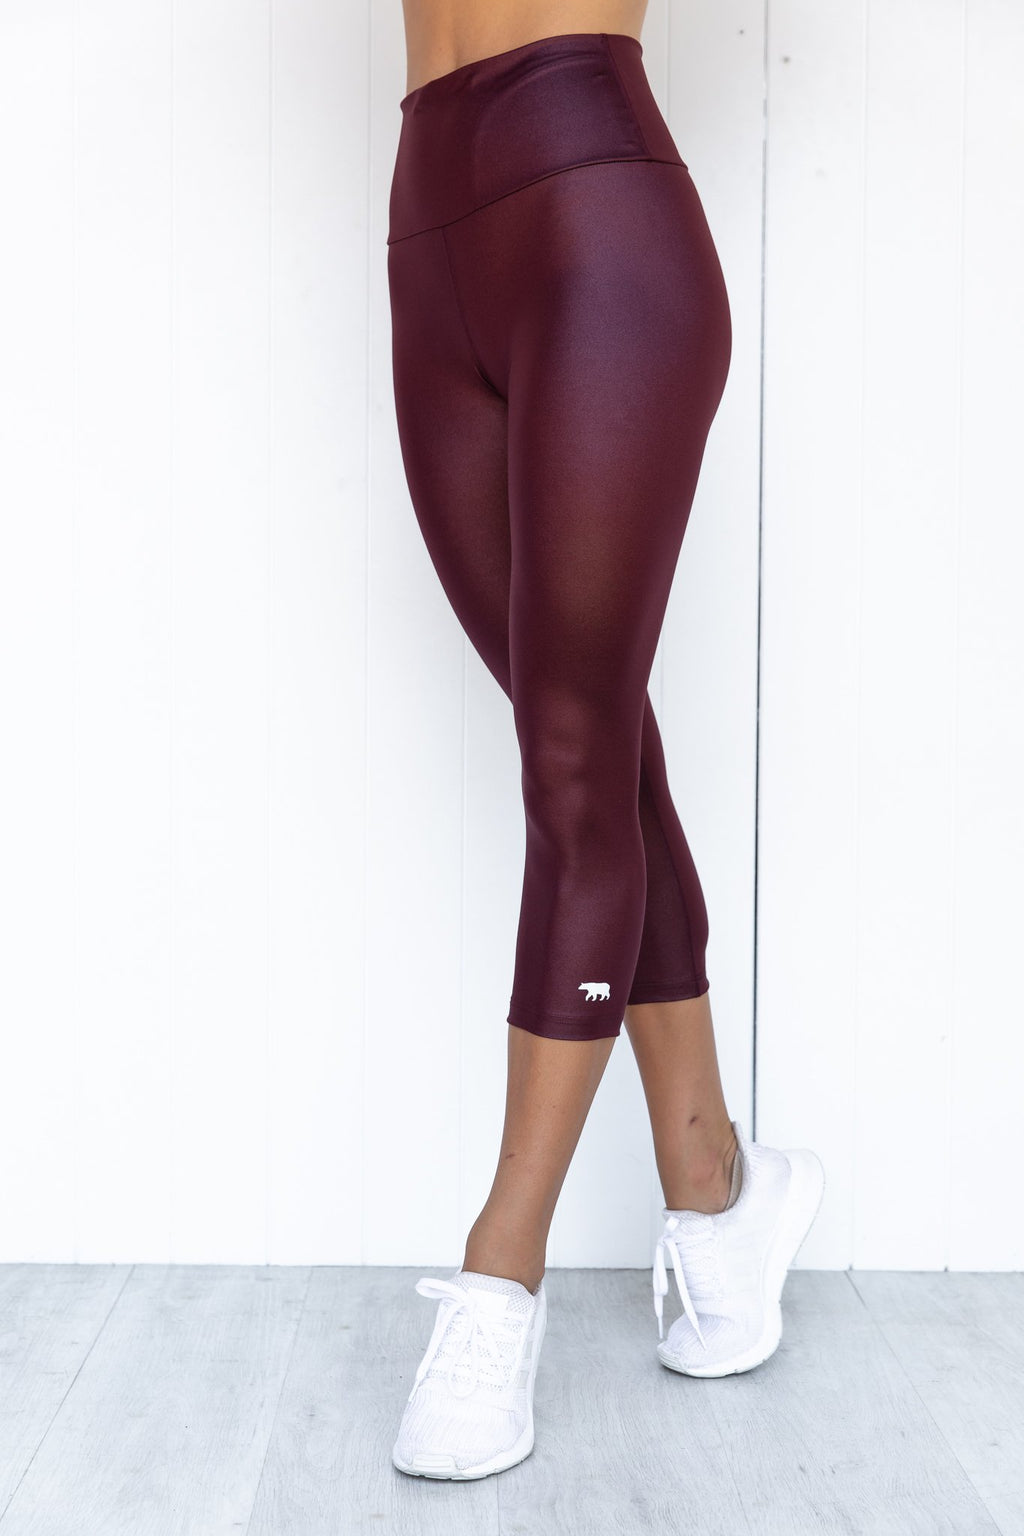 Crystal Werk It  3/4 Tight - Claret